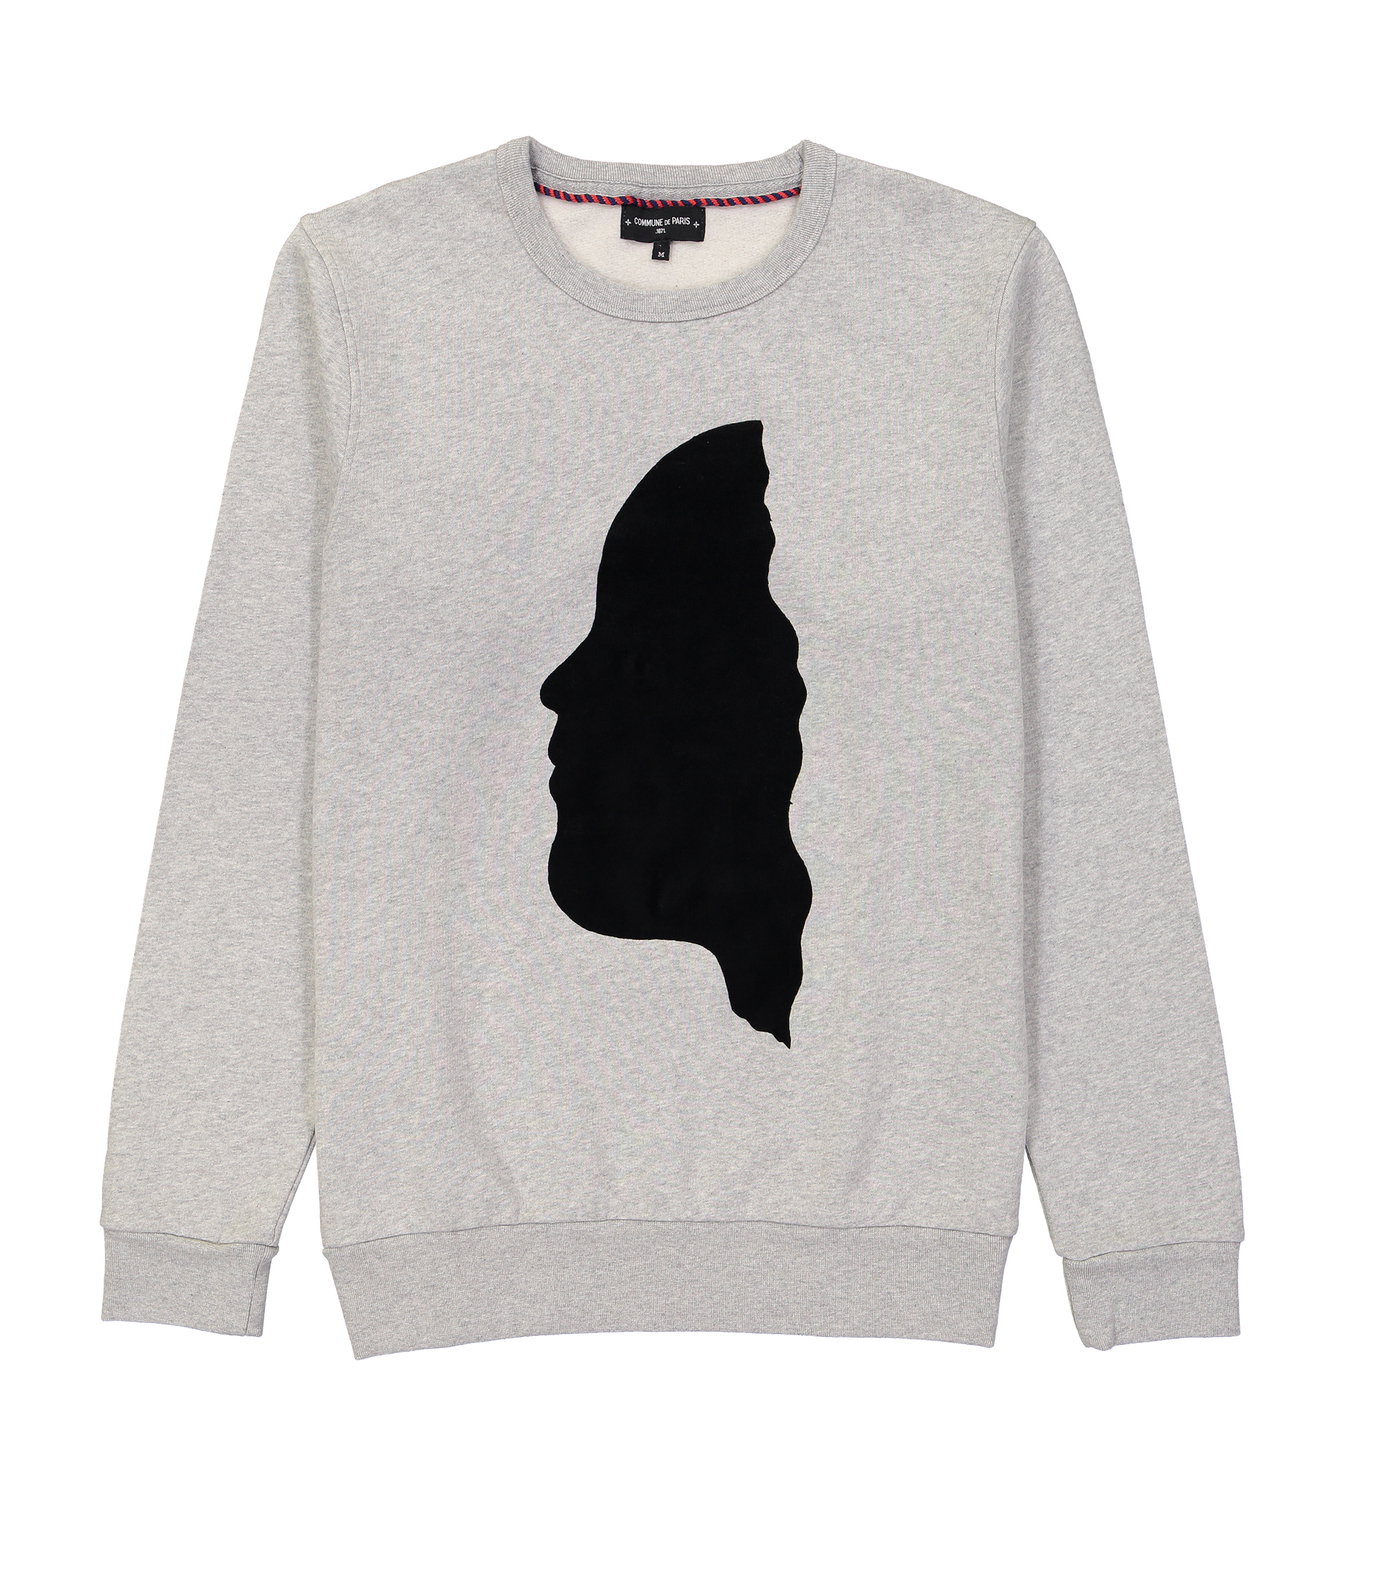 SWEAT VISAGE - Gris chine